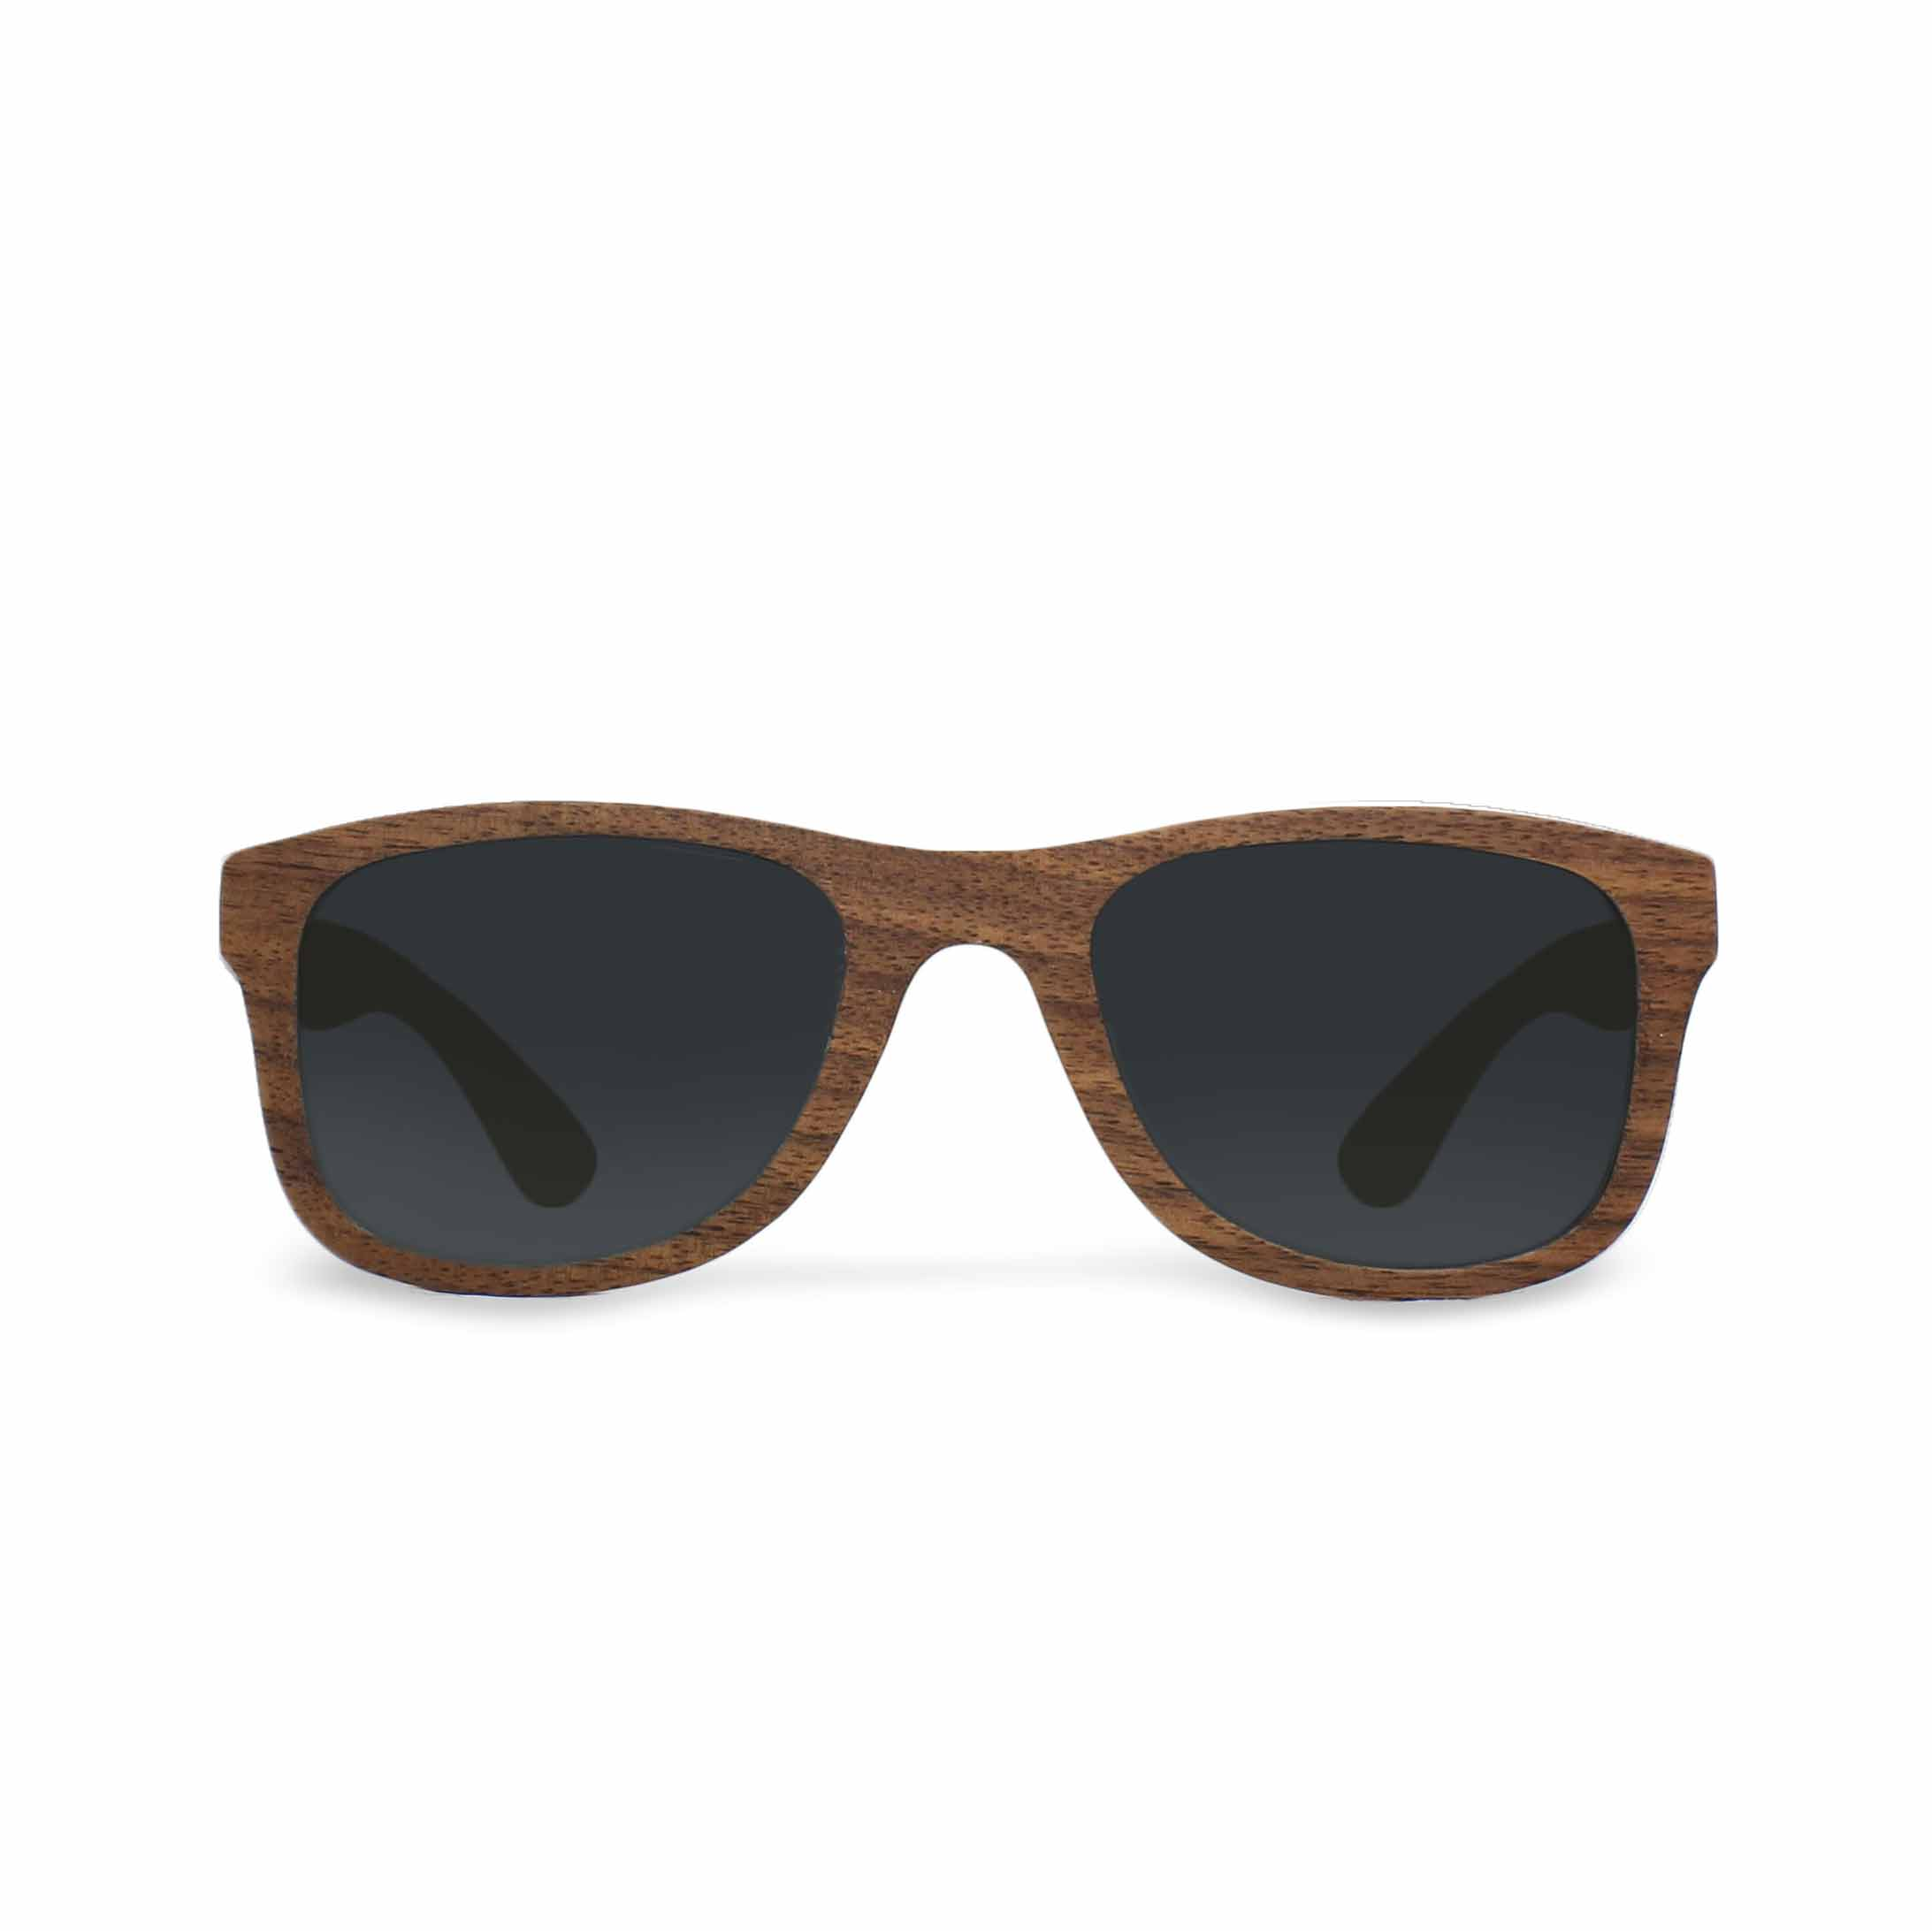 Gafas de sol WAYFARER Balano por Time for Wood